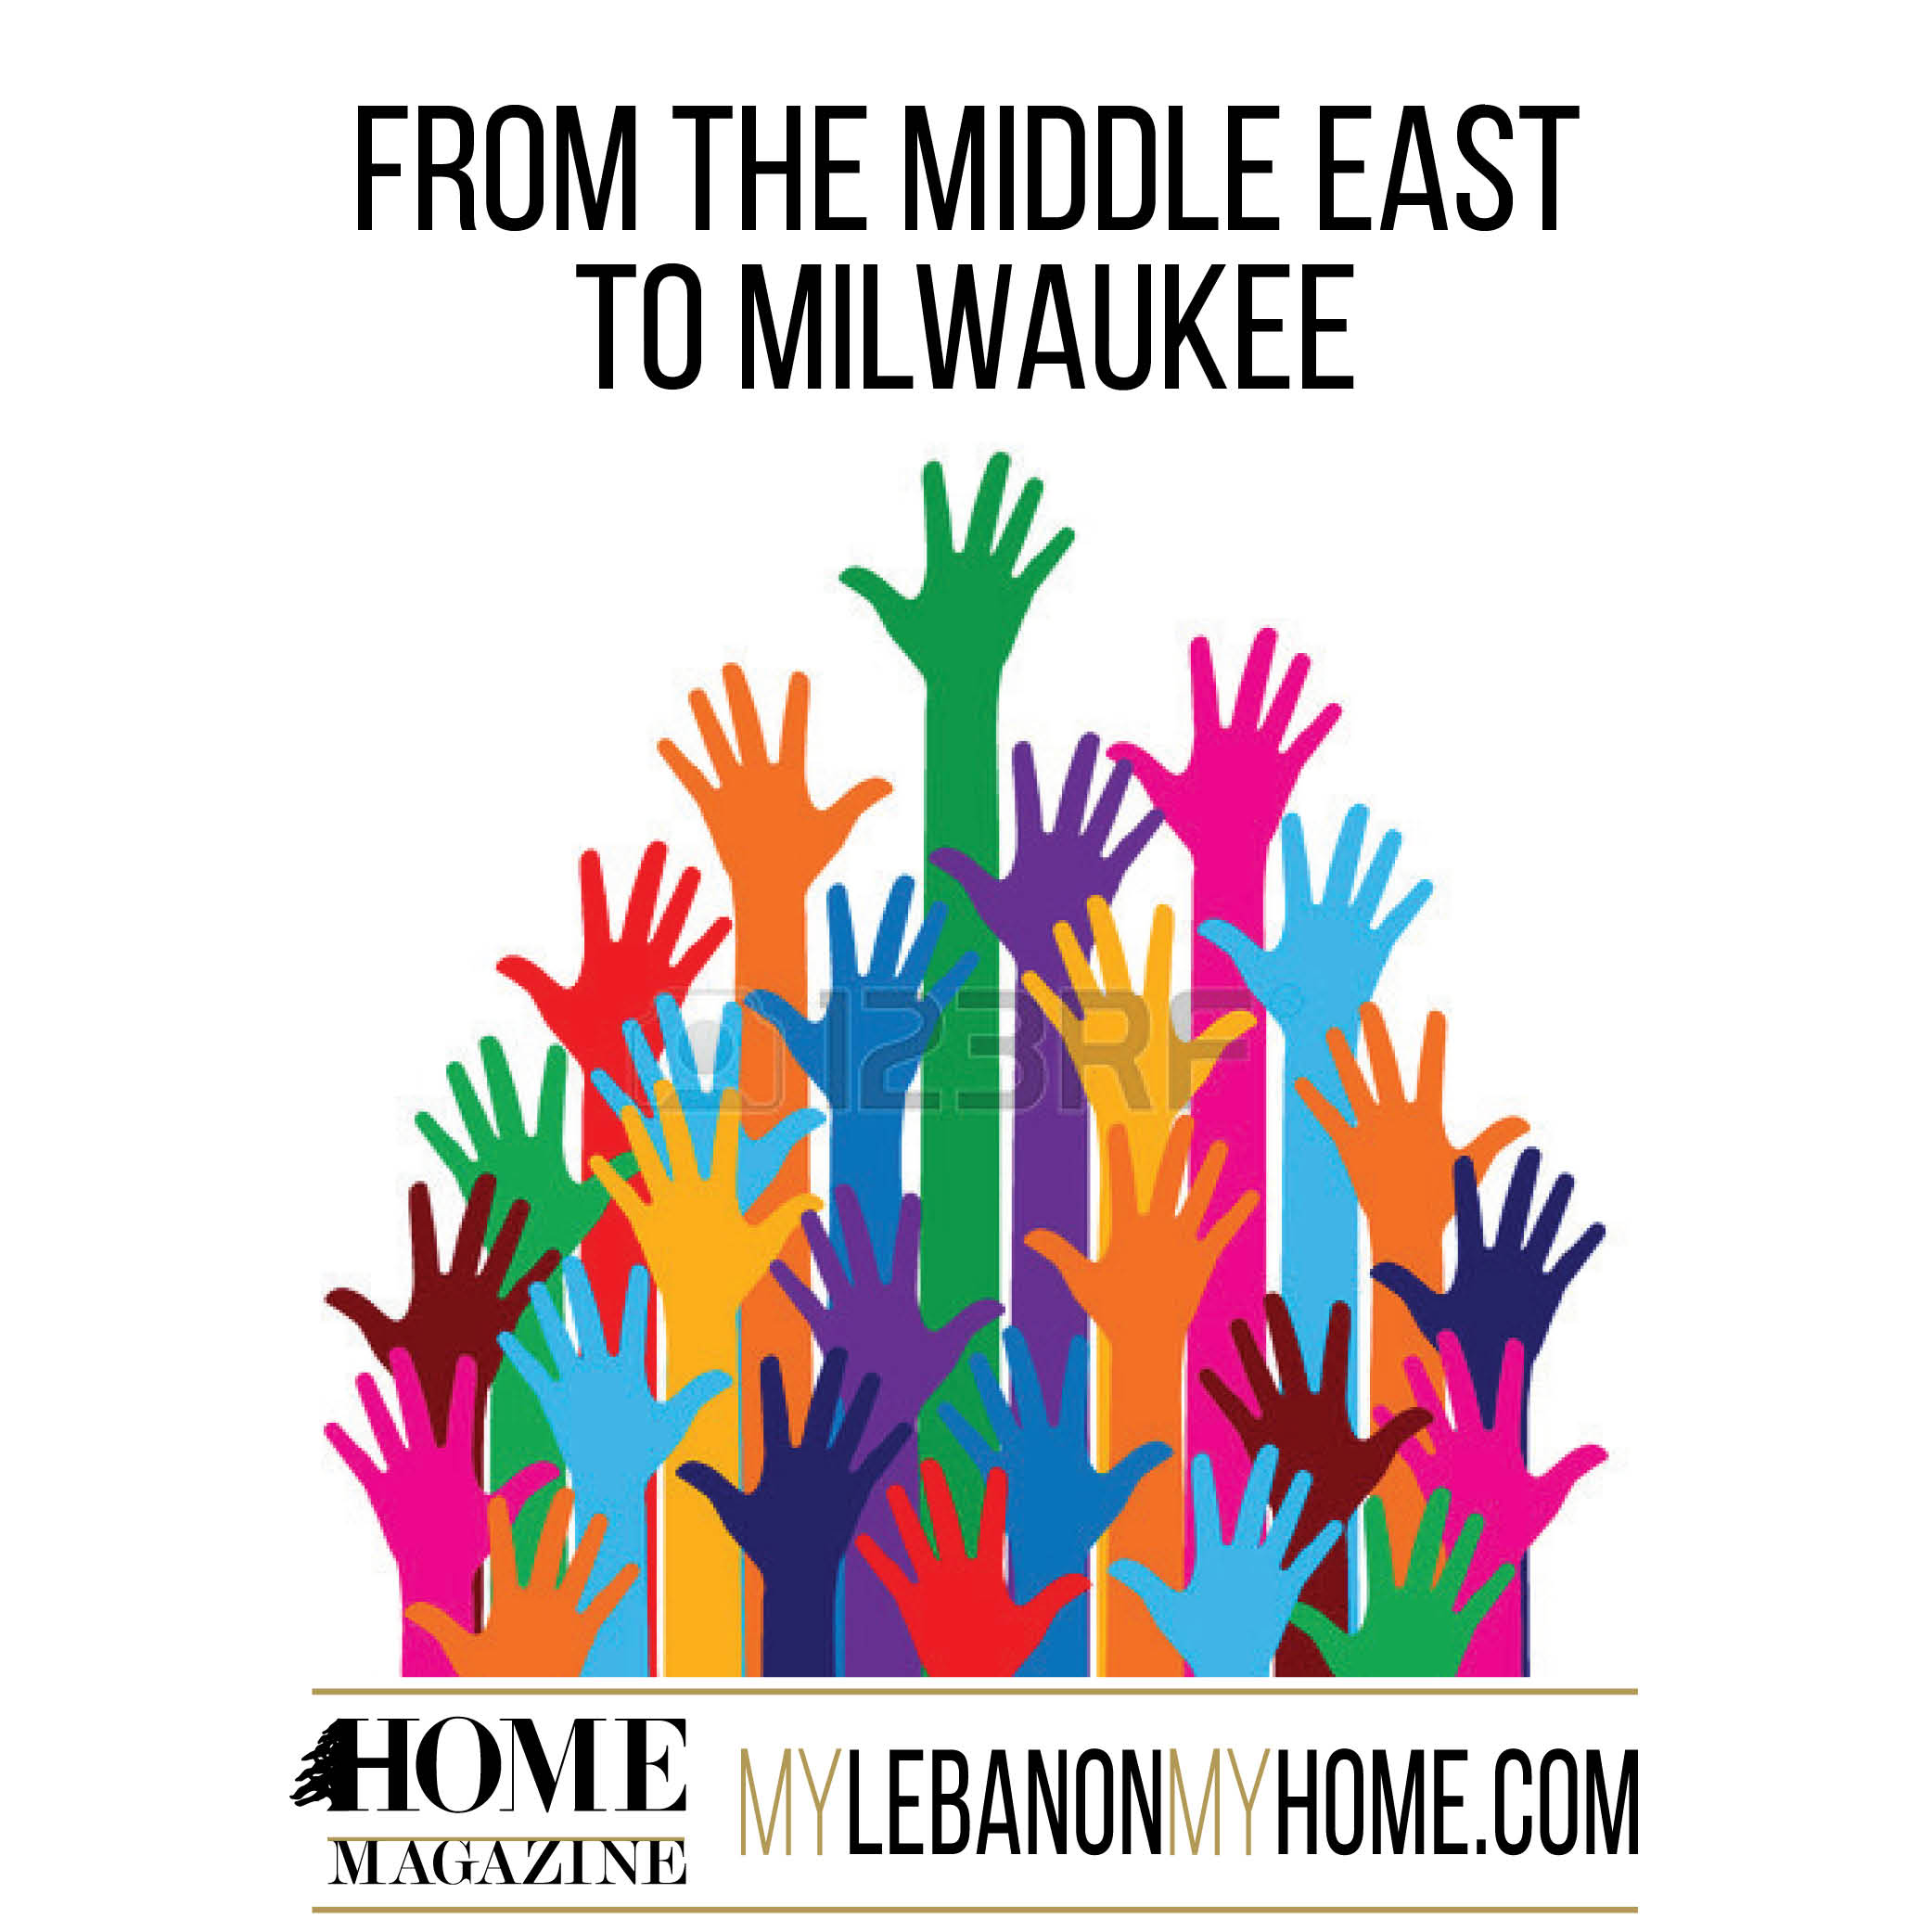 From The Middle East to Milwaukee